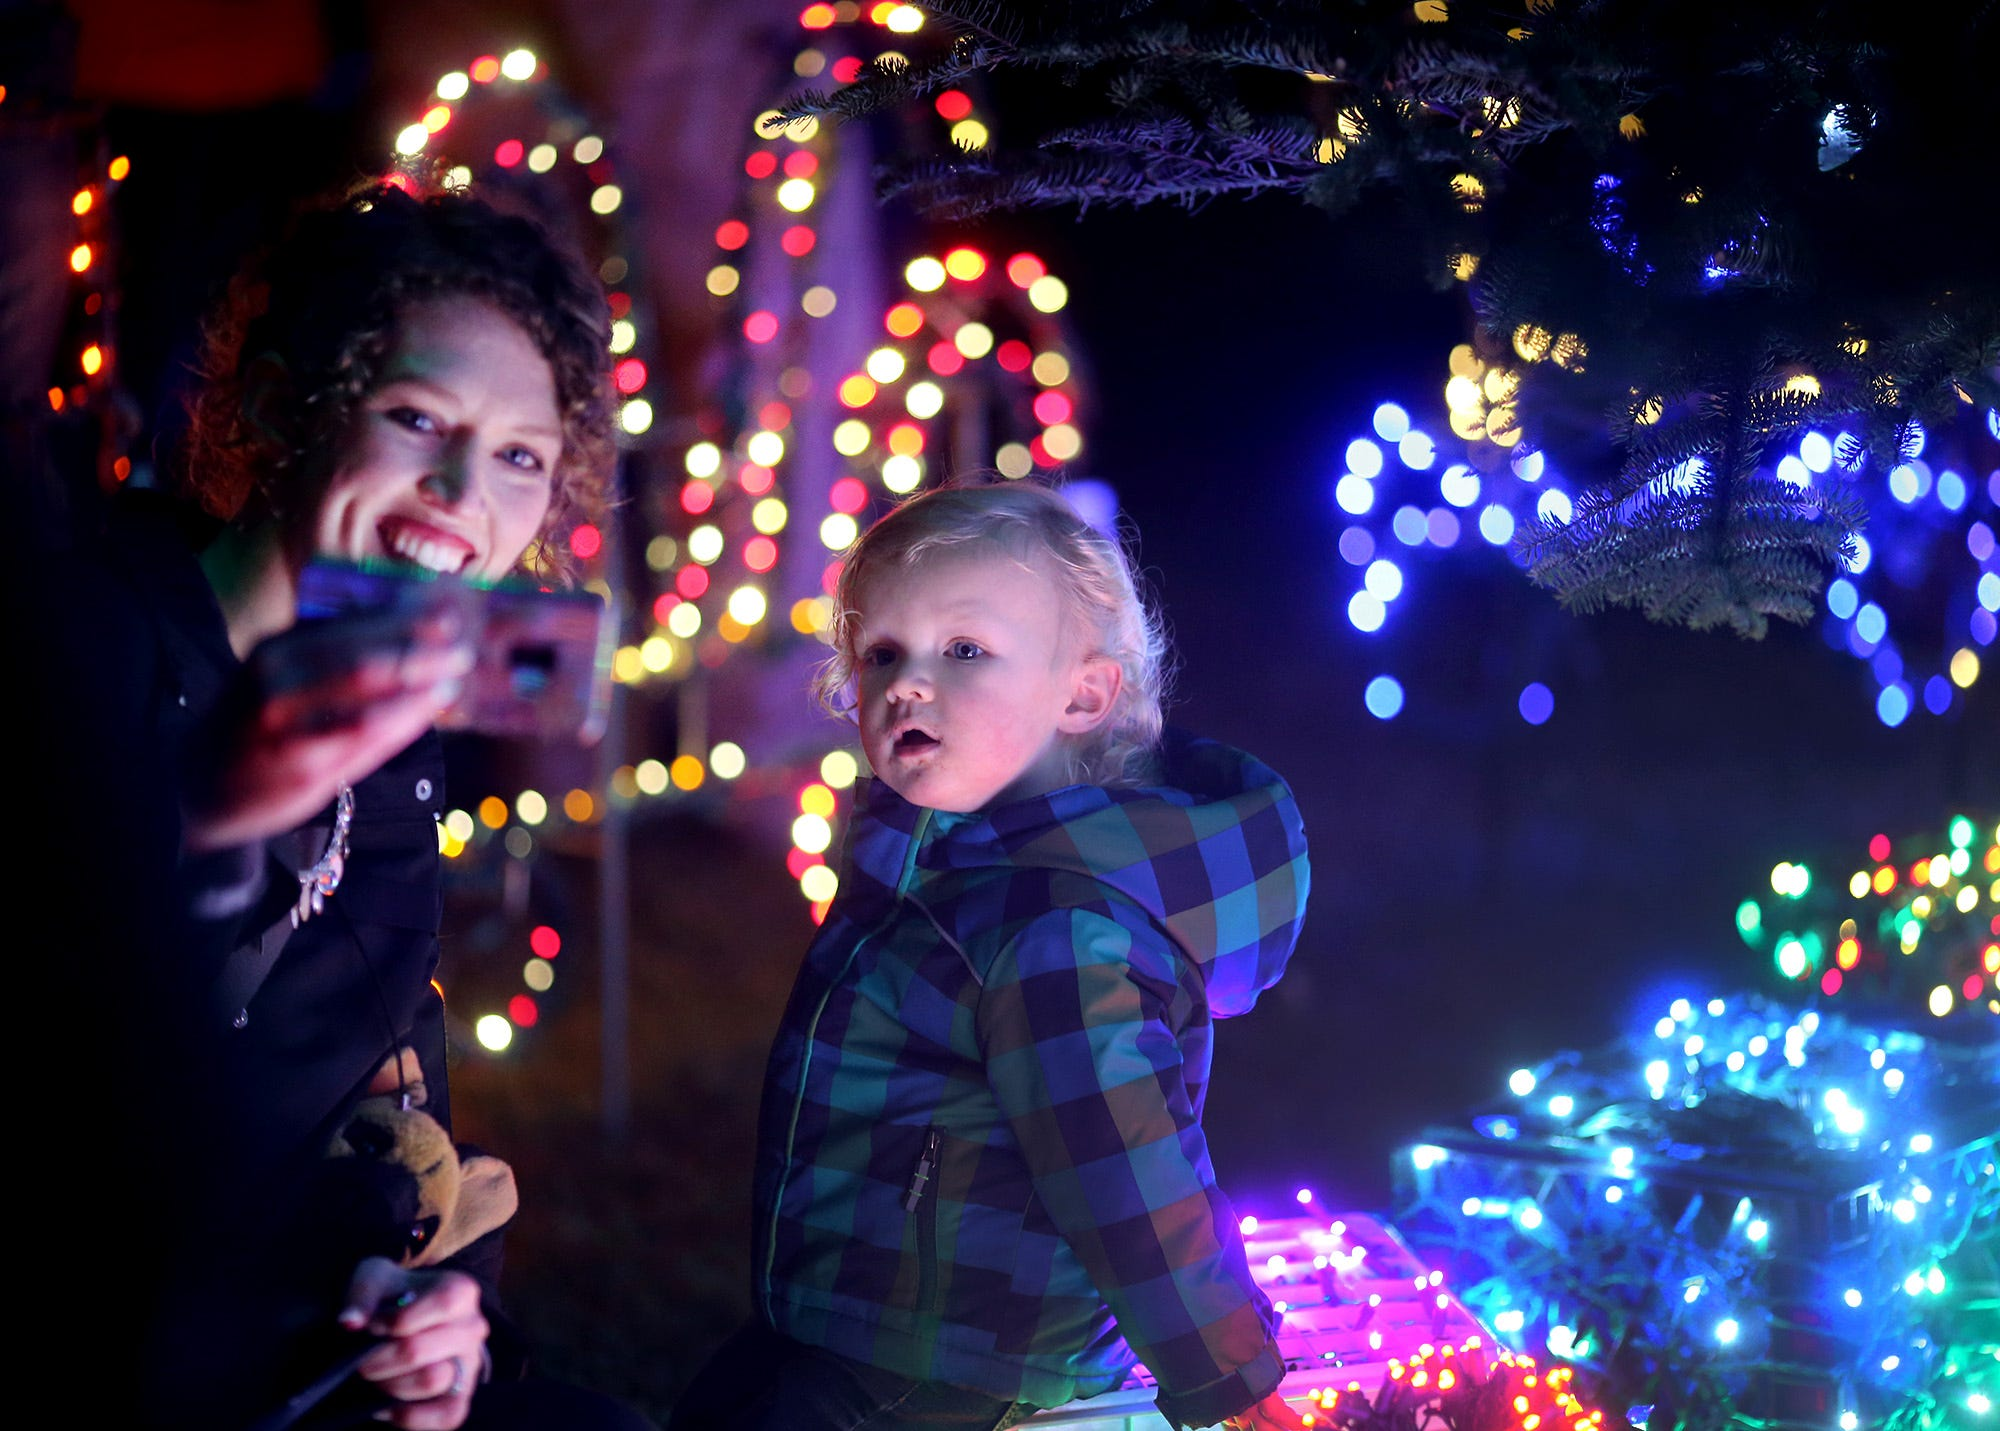 Kingston Cove lighting ceremony makes ready for the holidays